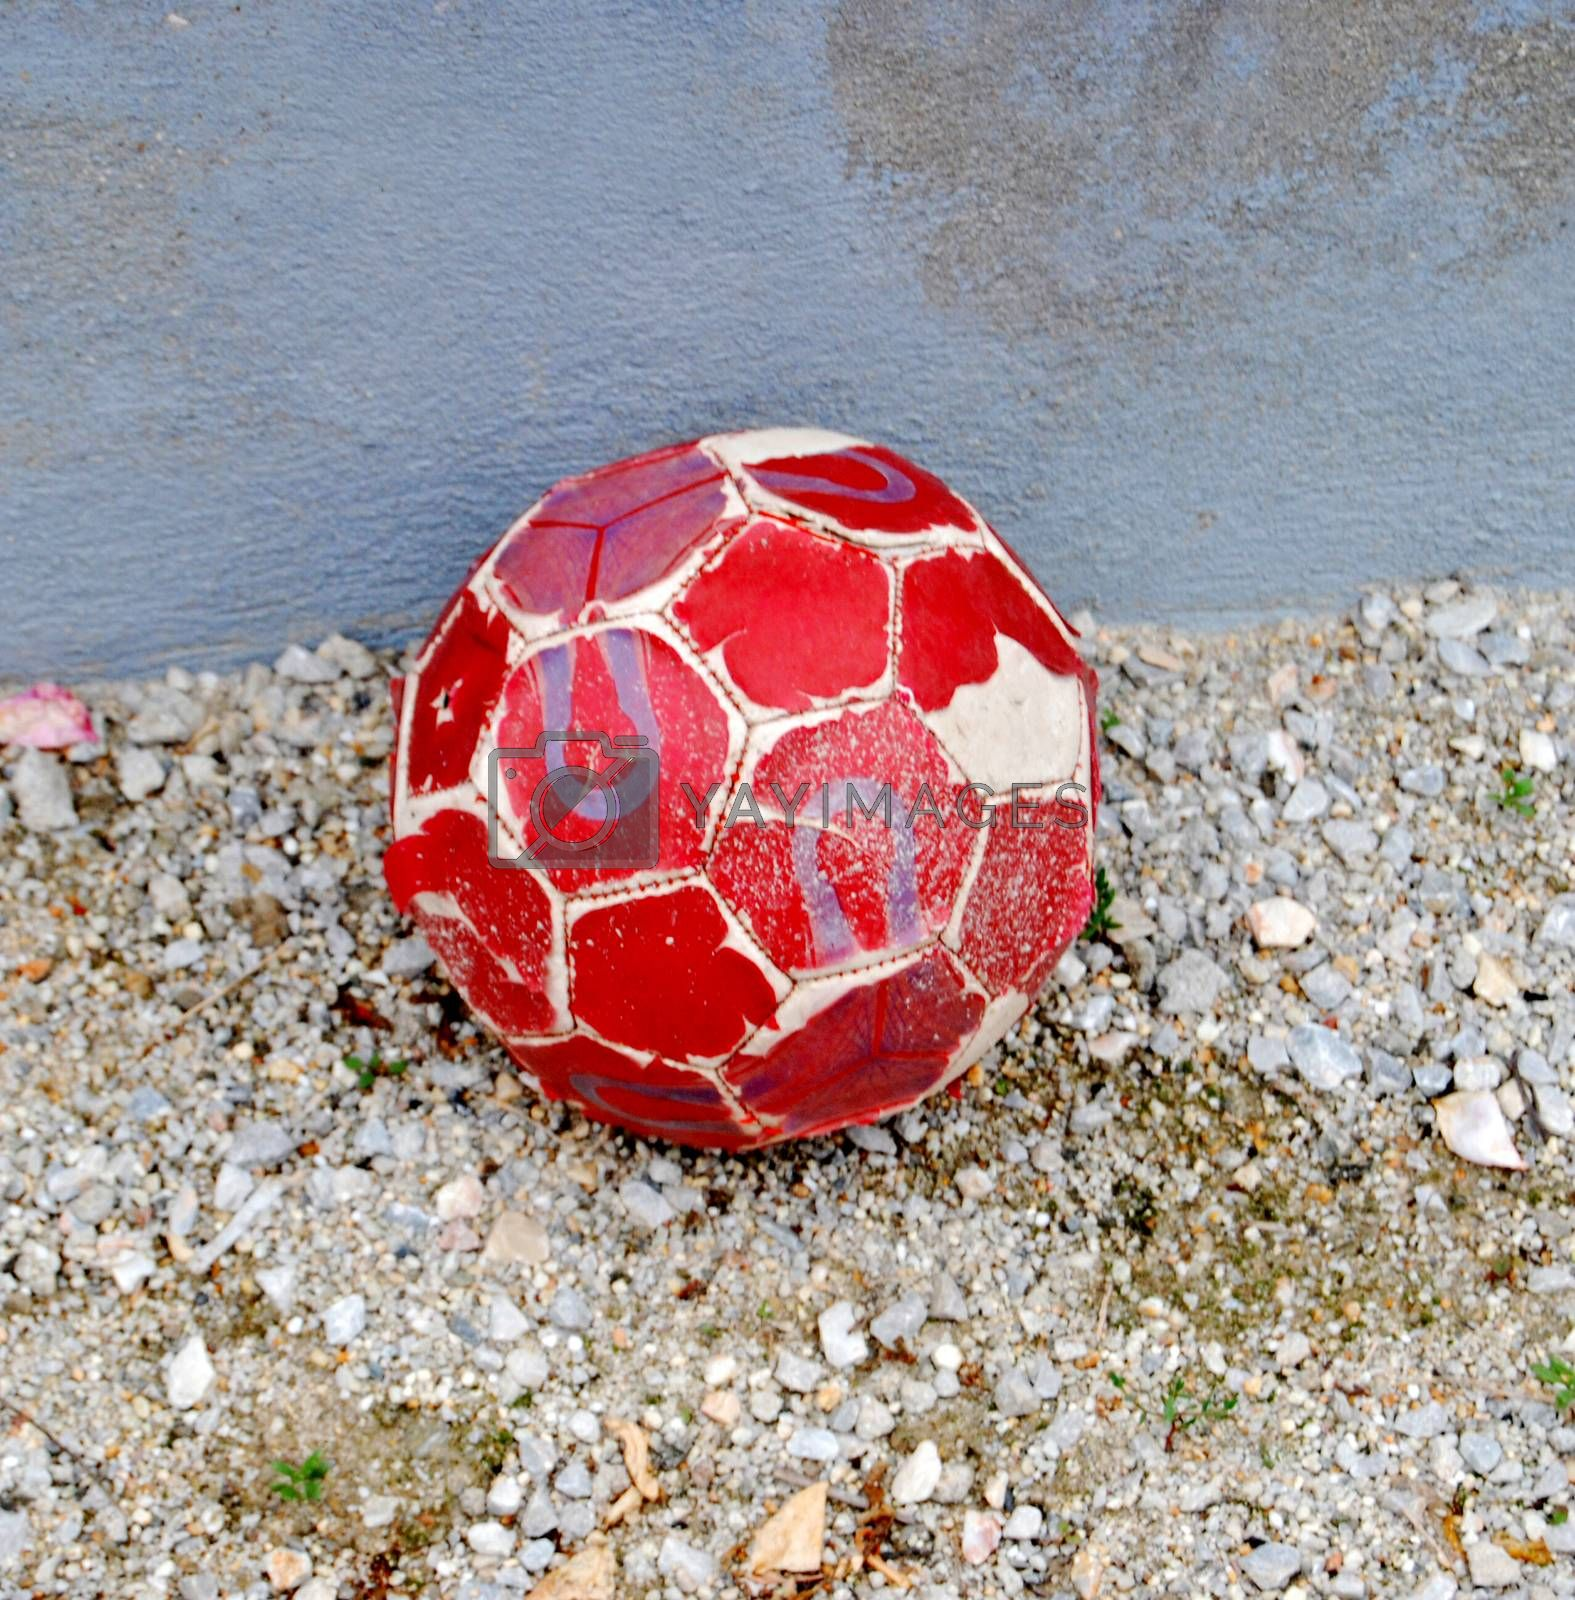 old red soccer ball, image of a